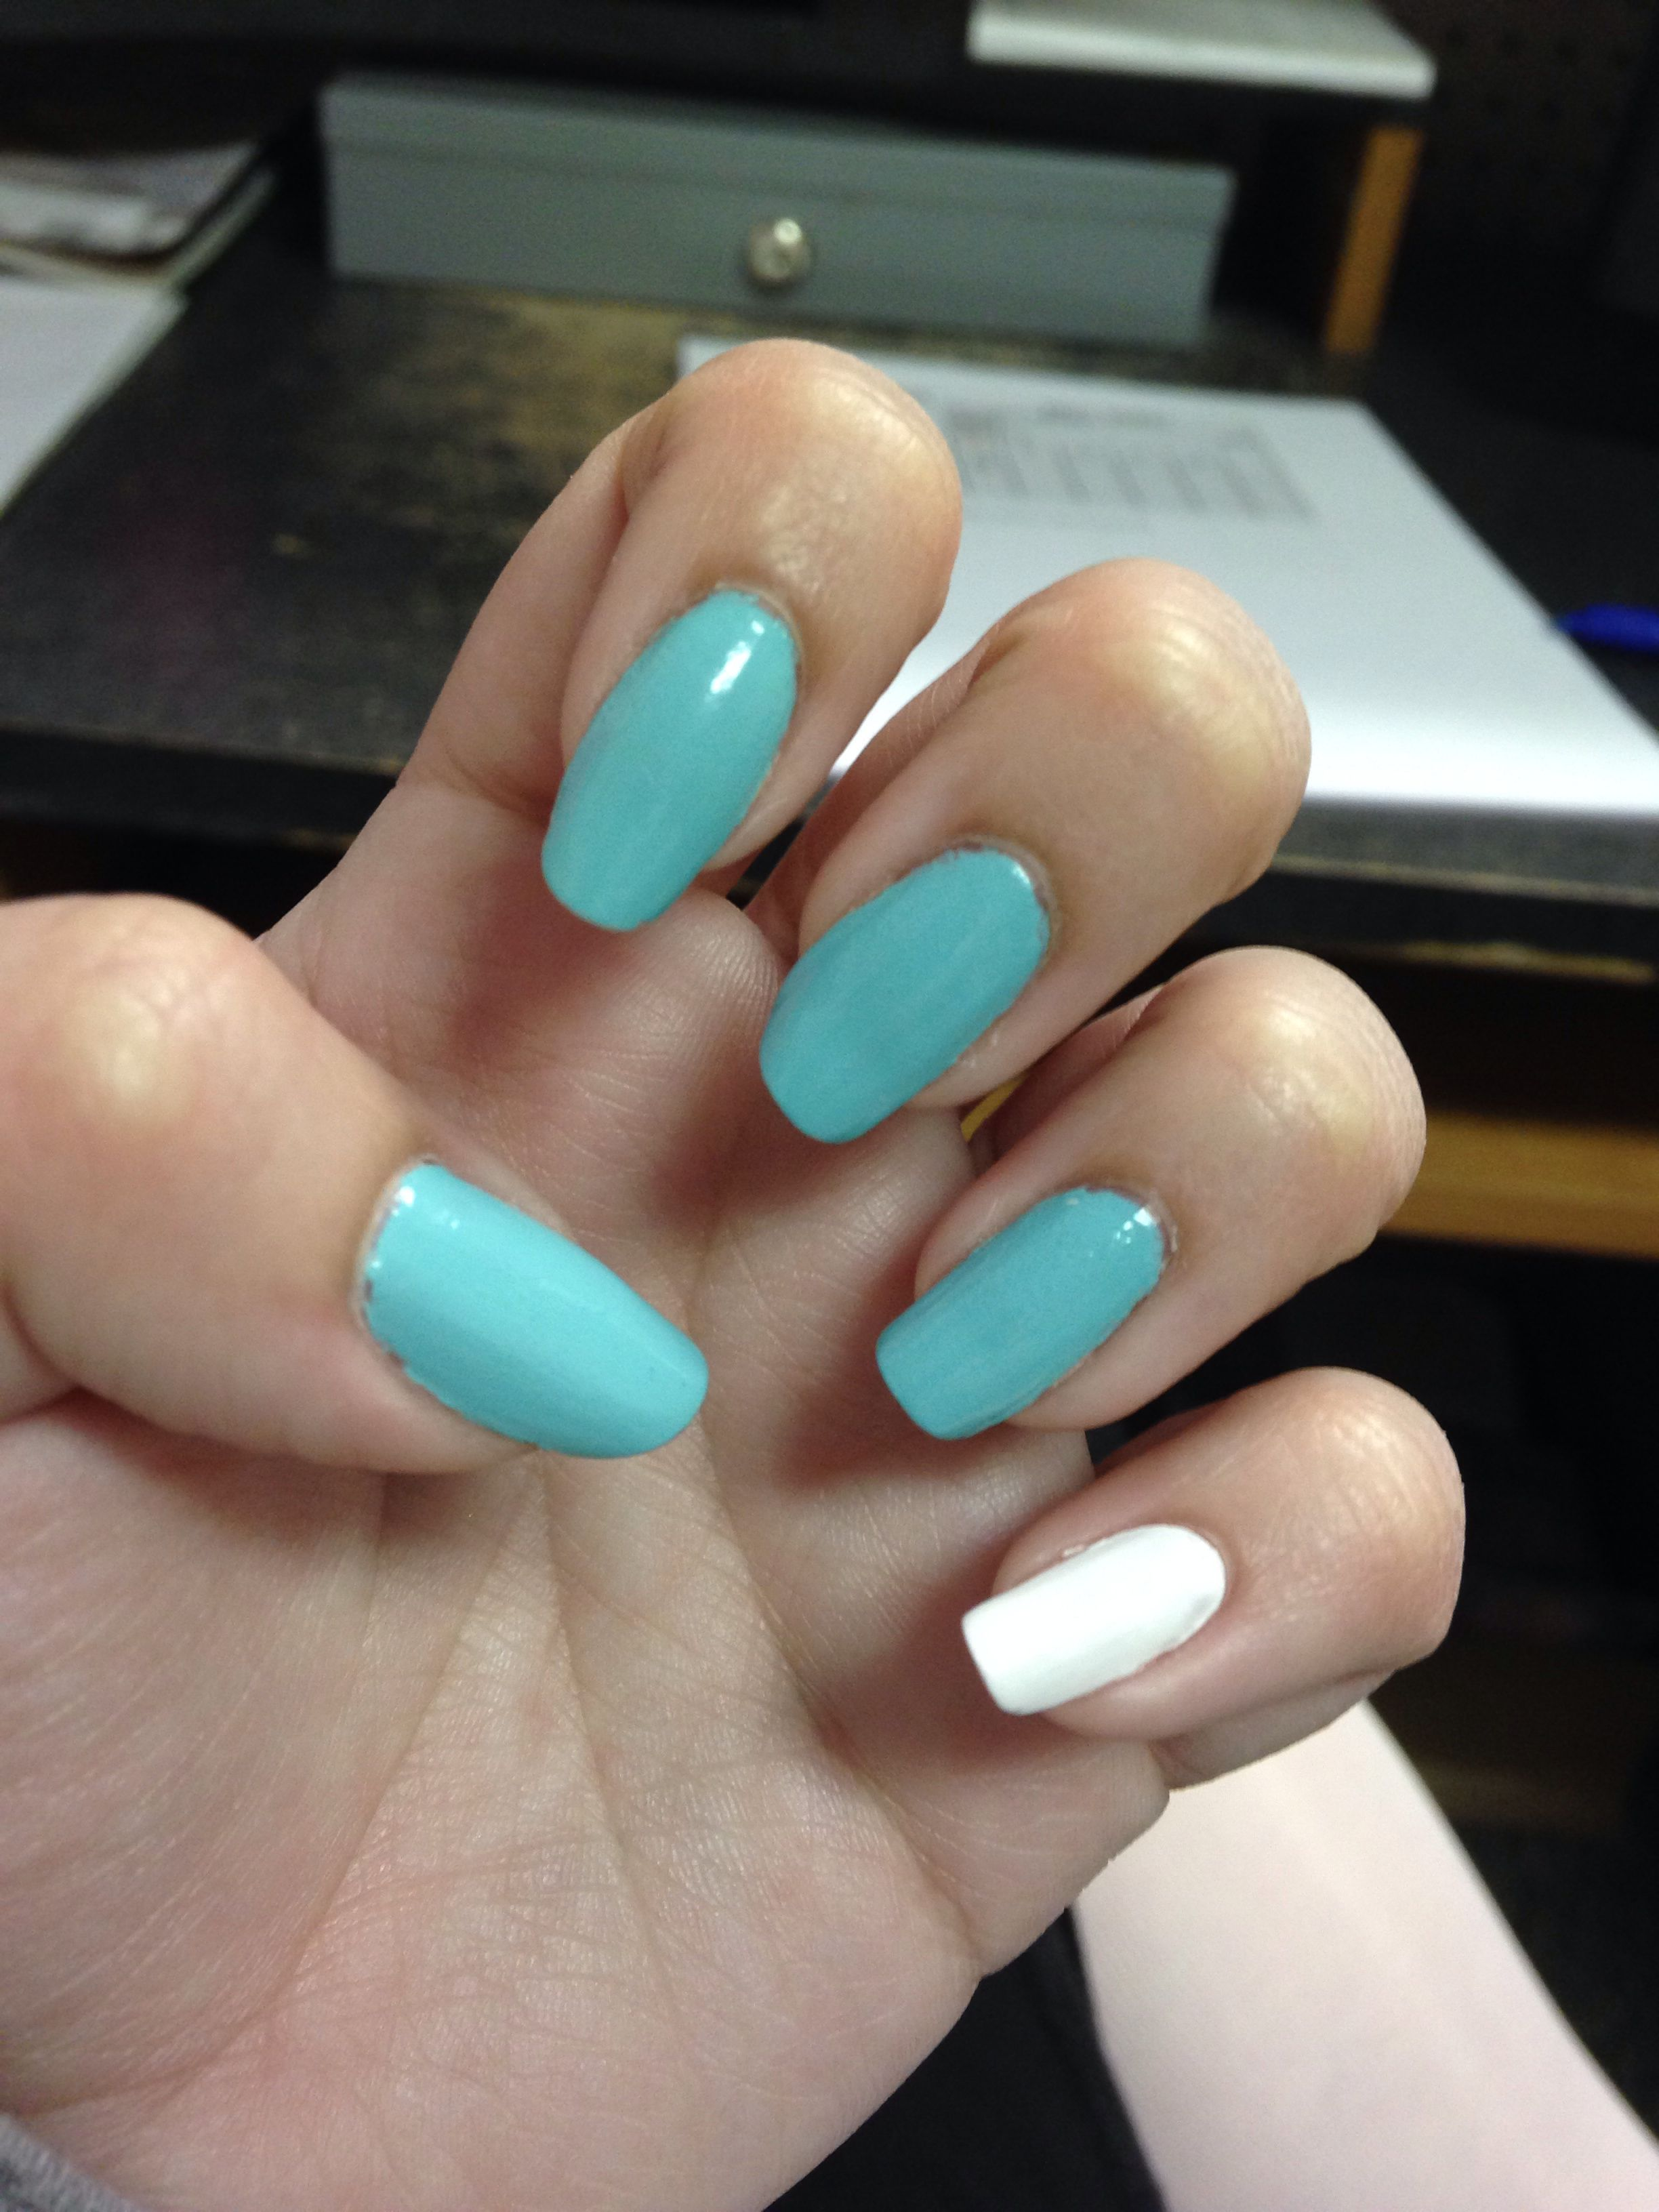 New nail style! Pinkie nail a different color | beauty | Pinterest